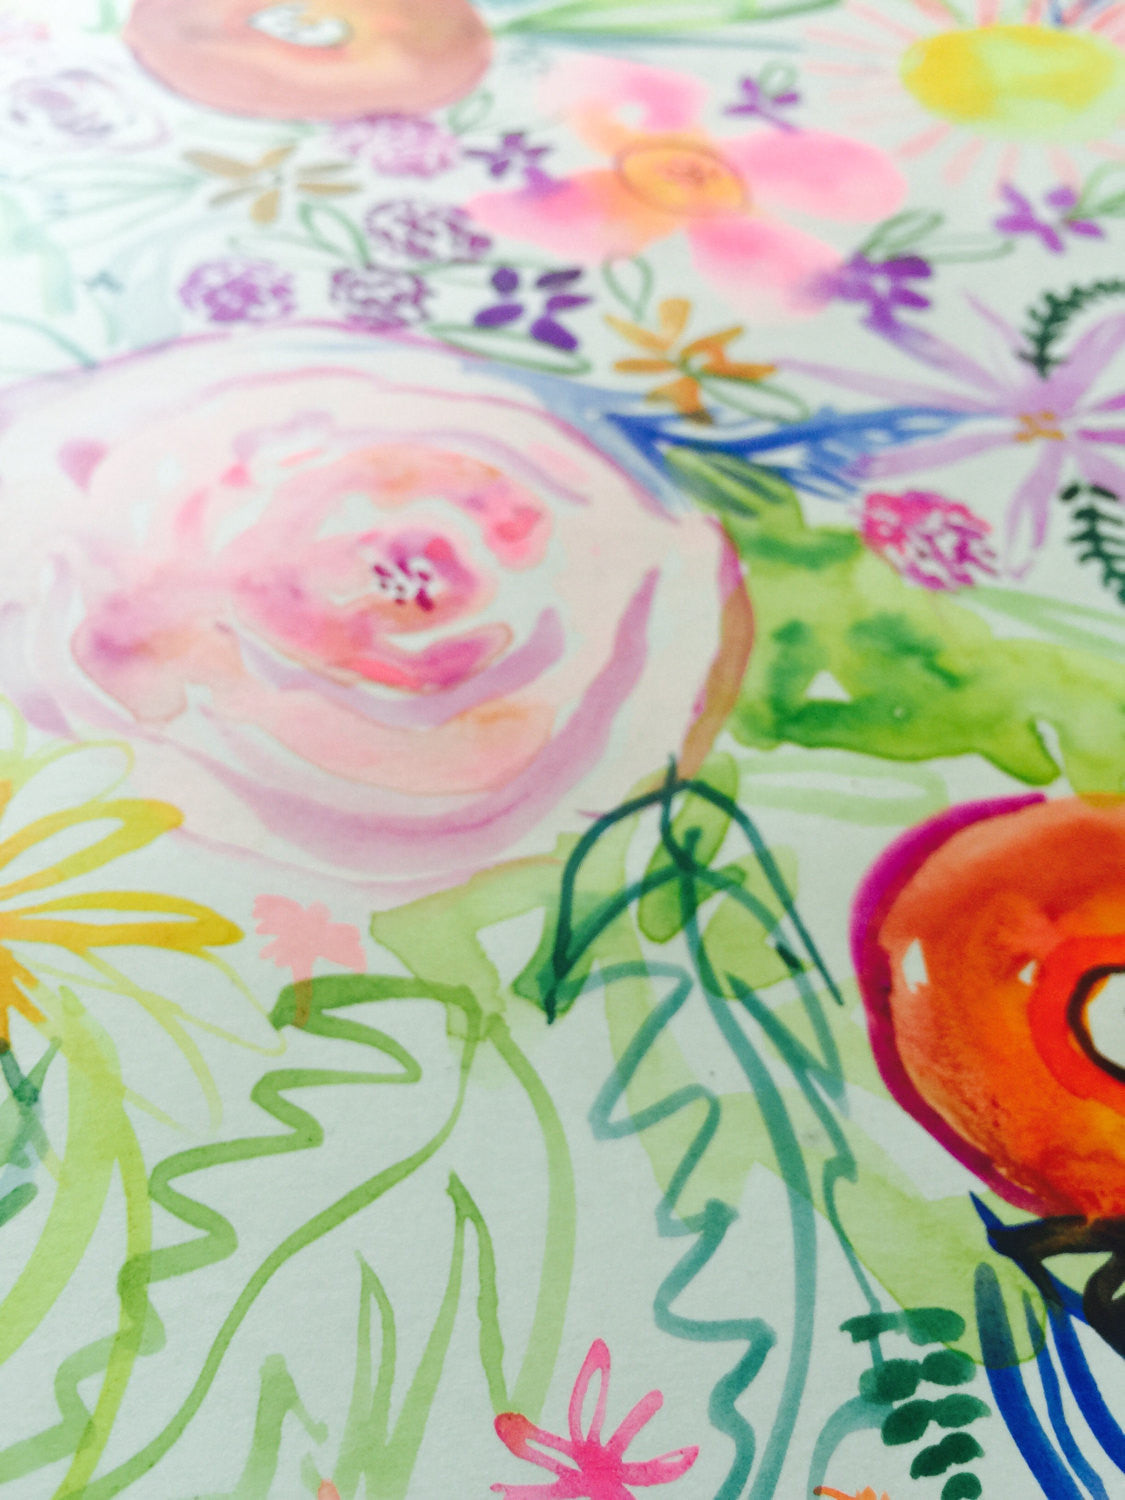 Colorful handcrafted summer inspired floral watercolor and gouache painting. Unique painting in bright colors.